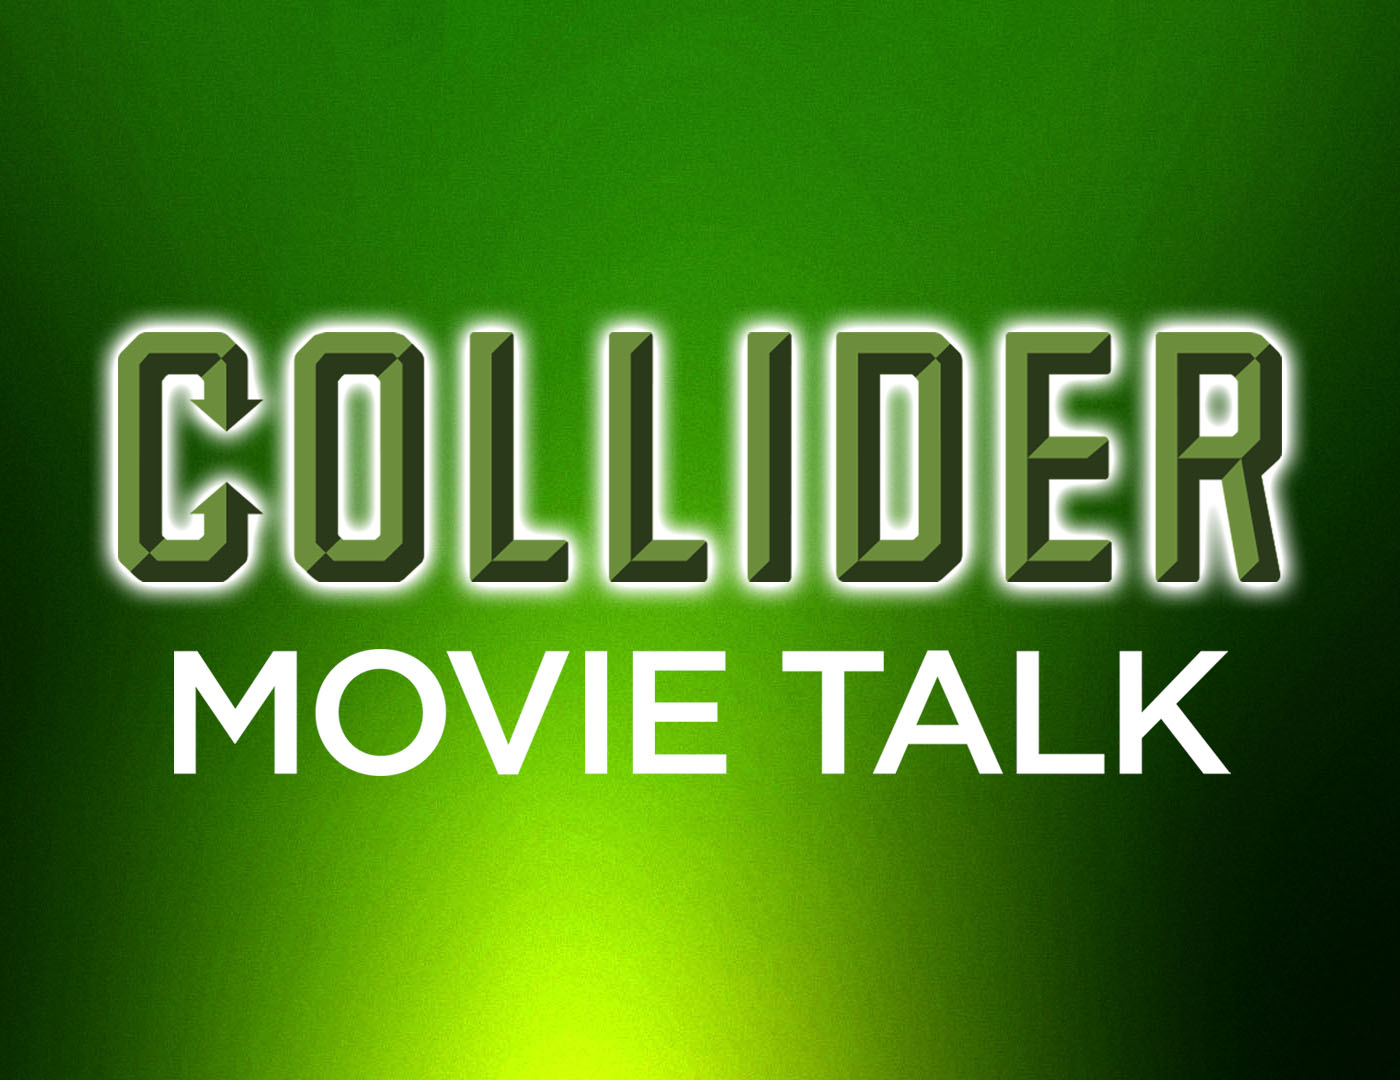 Collider Movie Talk - Kingpin Won't Appear In Spider-Man, Chris Nolan Begins Production On New Film